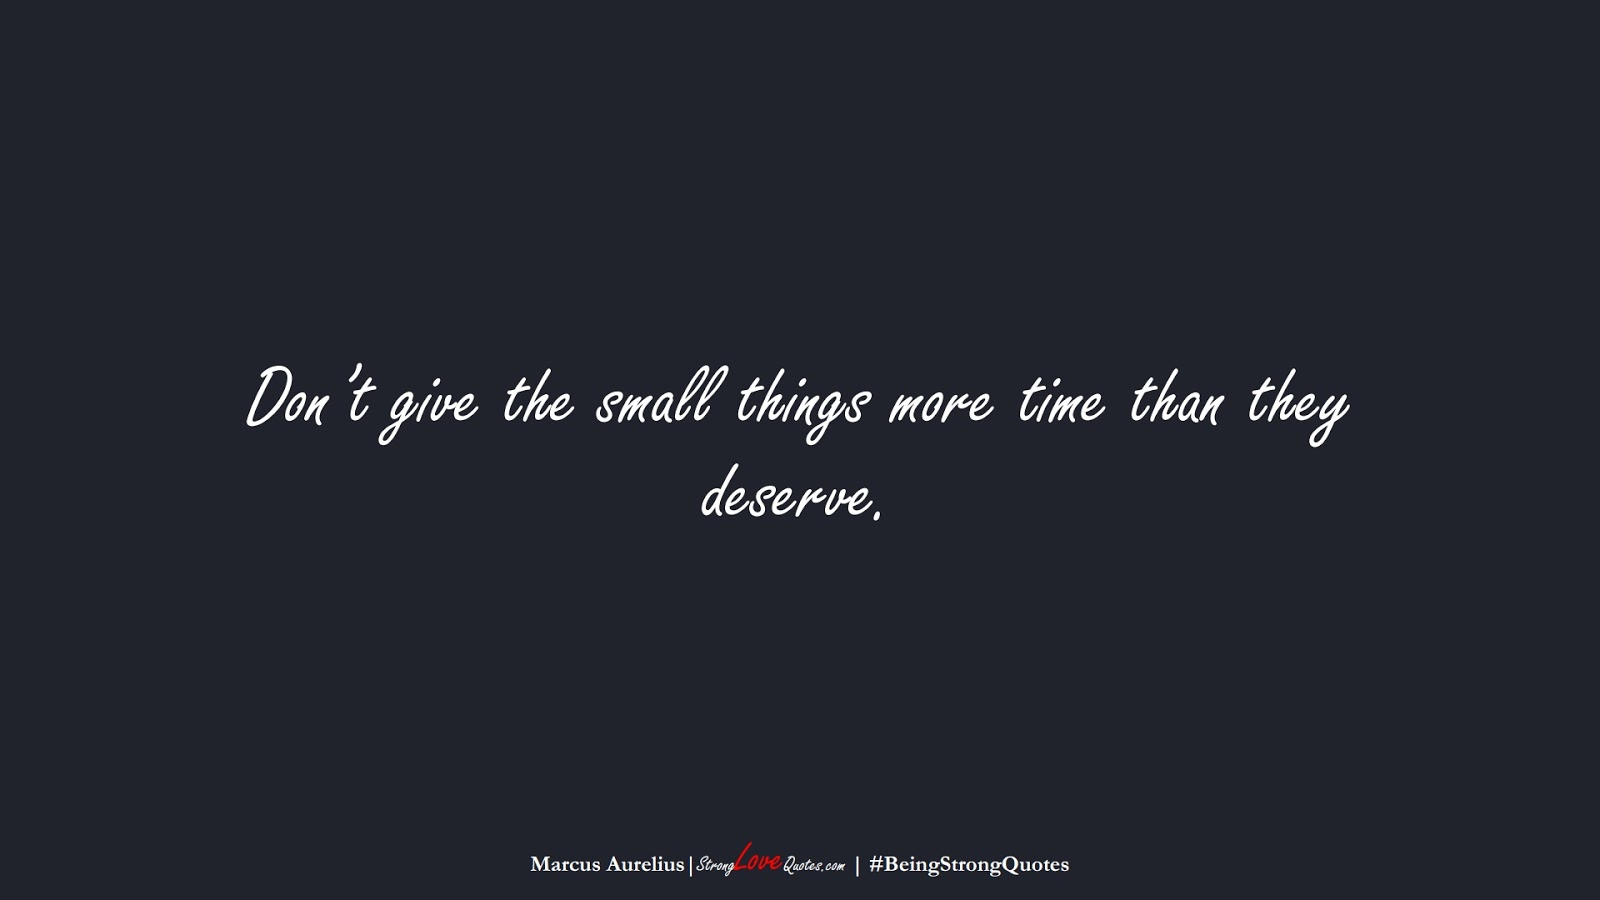 Don't give the small things more time than they deserve. (Marcus Aurelius);  #BeingStrongQuotes